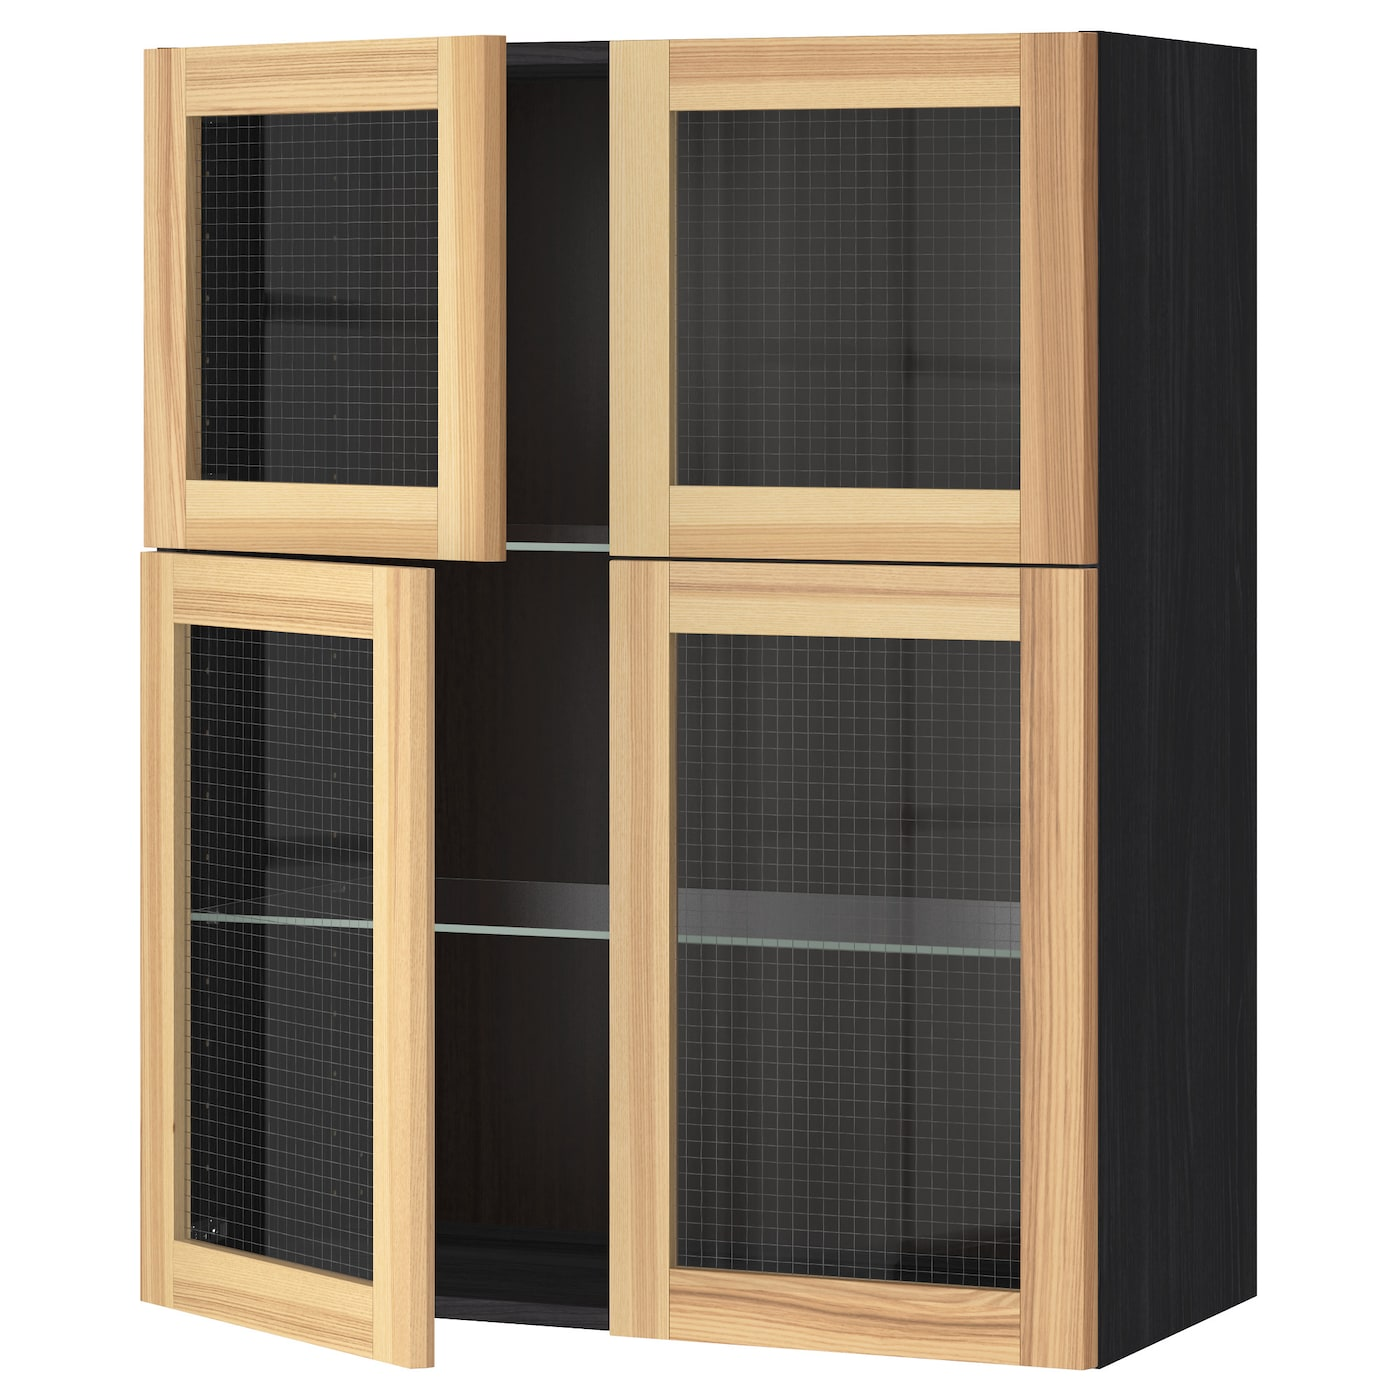 Captivating IKEA METOD Wall Cabinet W Shelves/4 Glass Drs Sturdy Frame Construction, 18  Mm